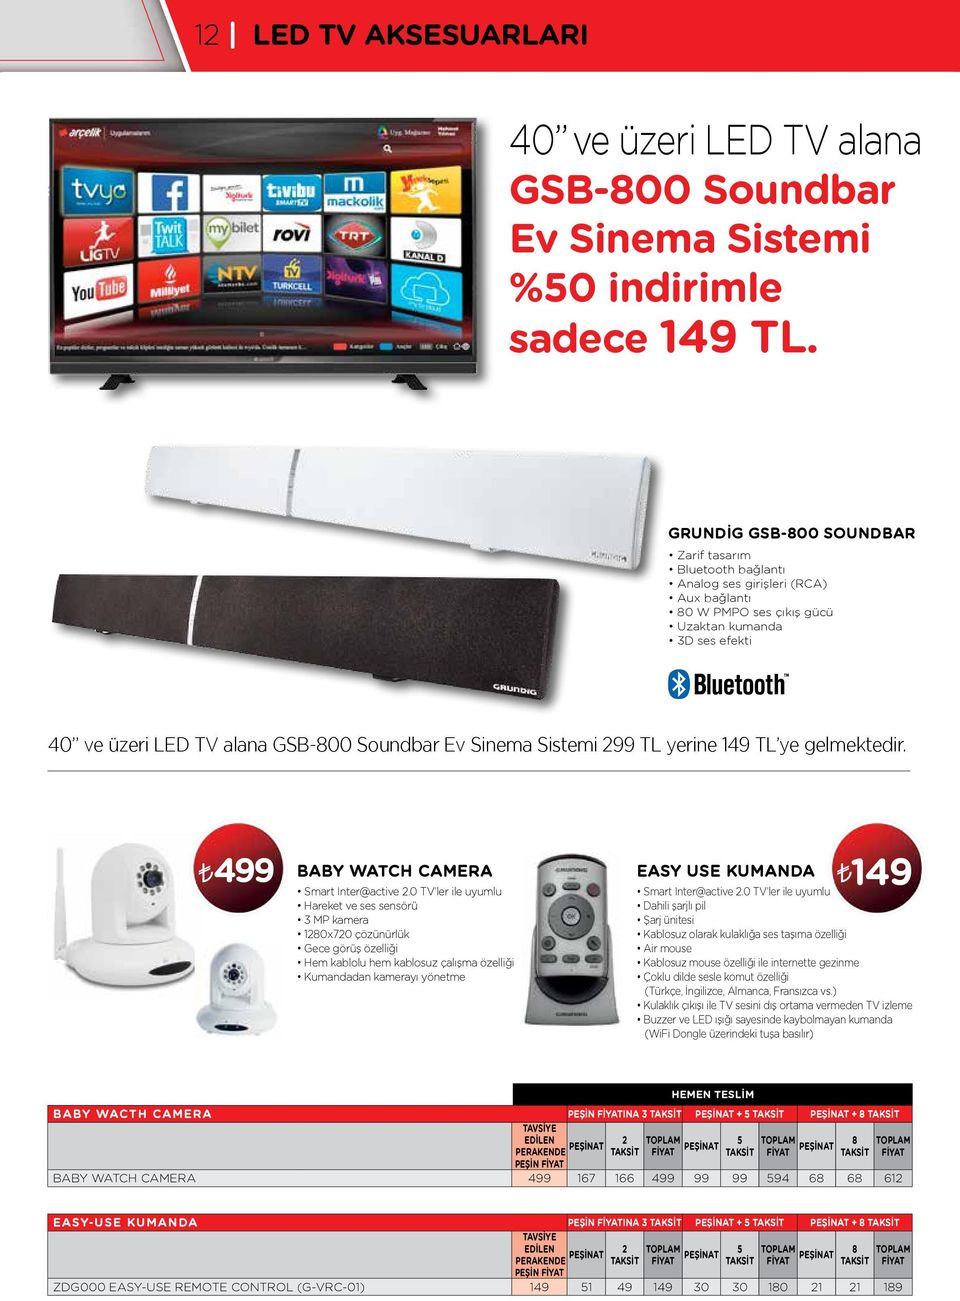 Sinema Sistemi 299 TL yerine 149 TL ye gelmektedir. 499 BABY WATCH CAMERA EASY USE KUMANDA 149 Smart Inter@active 2.